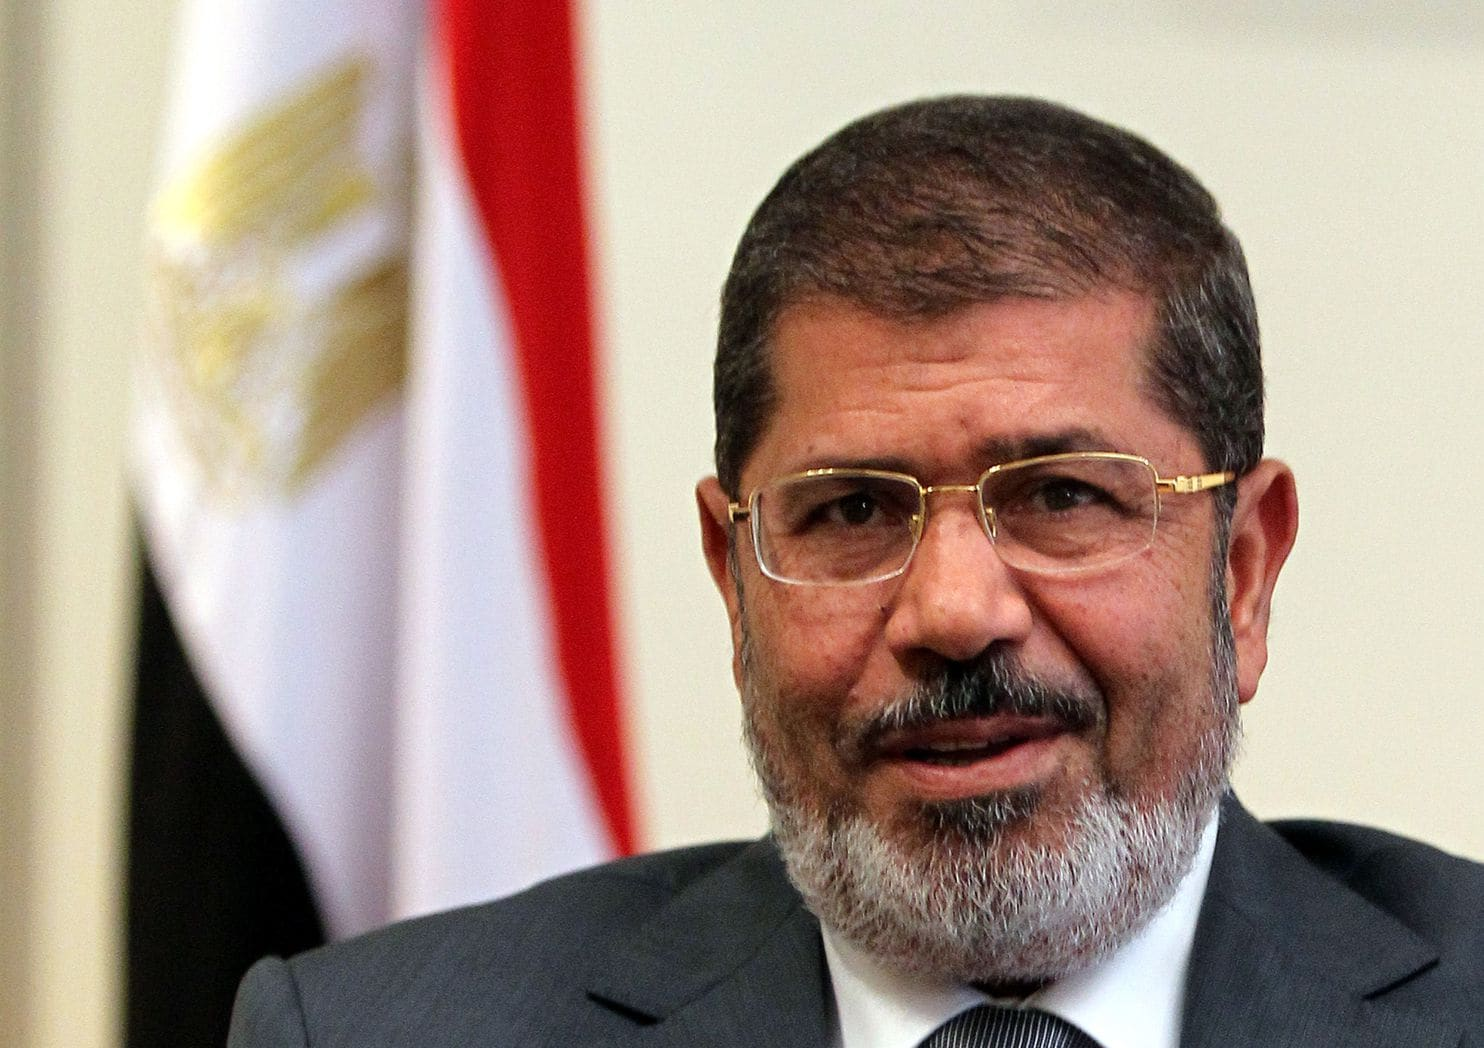 Morsi Dies in Court, Egypt's Former President Morsi Dies in Court